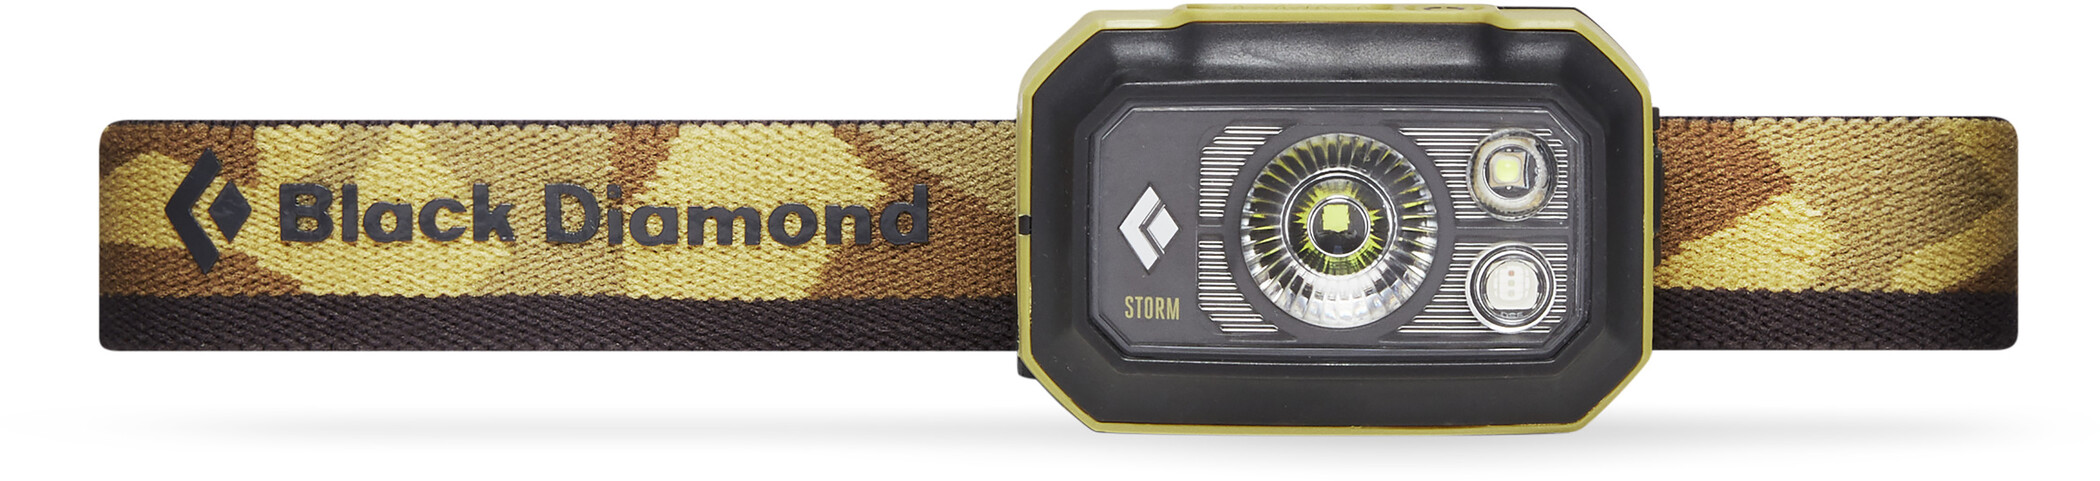 Black Diamond Storm 375 Pandelampe, sand (2019) | Headlamp